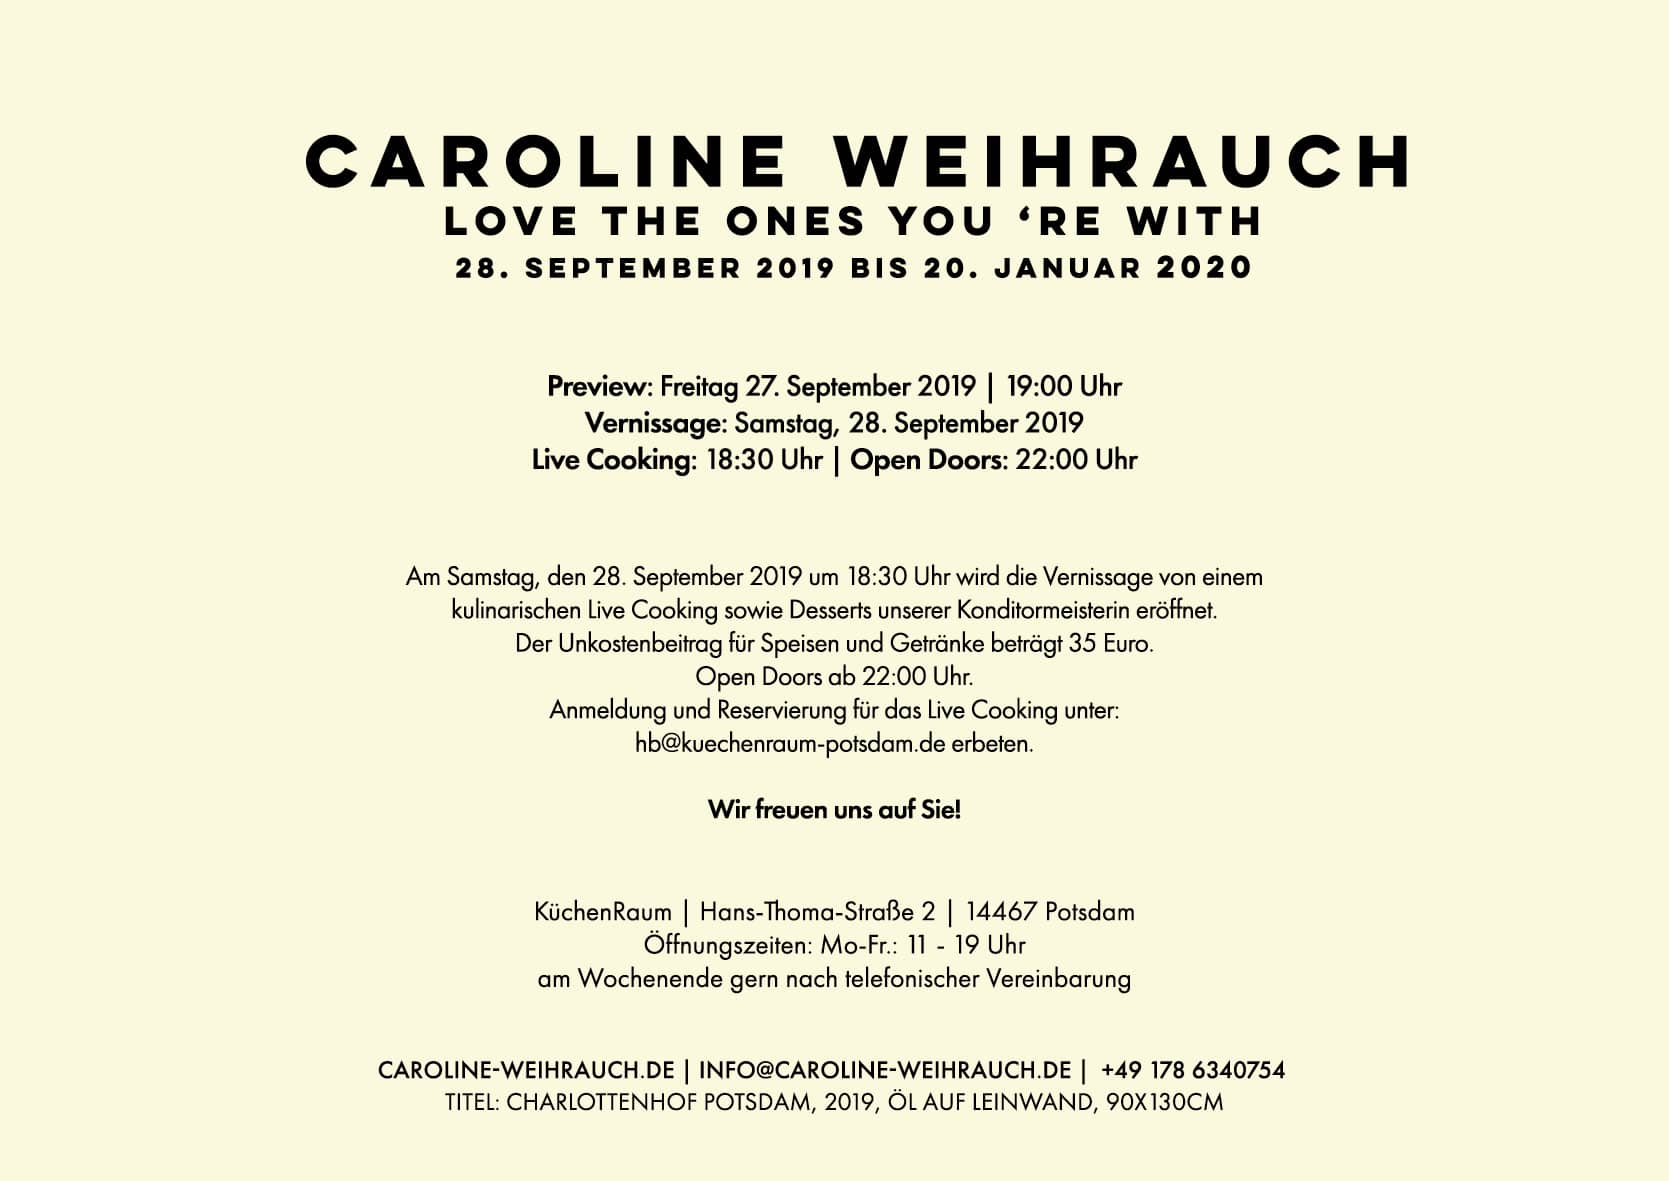 Ausstellung: LOVE THE ONES YOU 'RE WITH in Potsdam 2